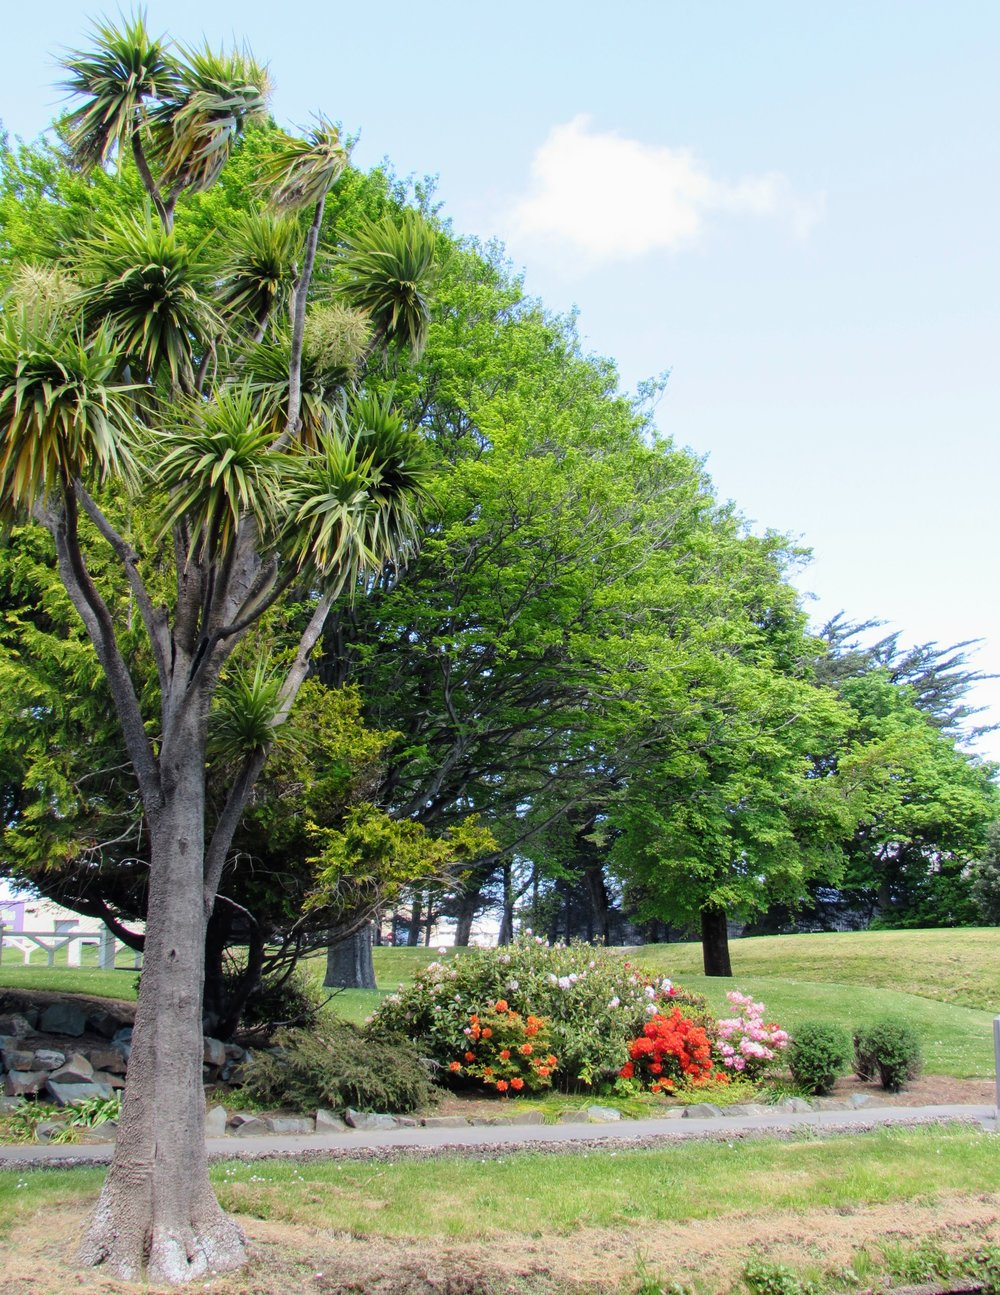 A Cabbage Tree in Invercargill.